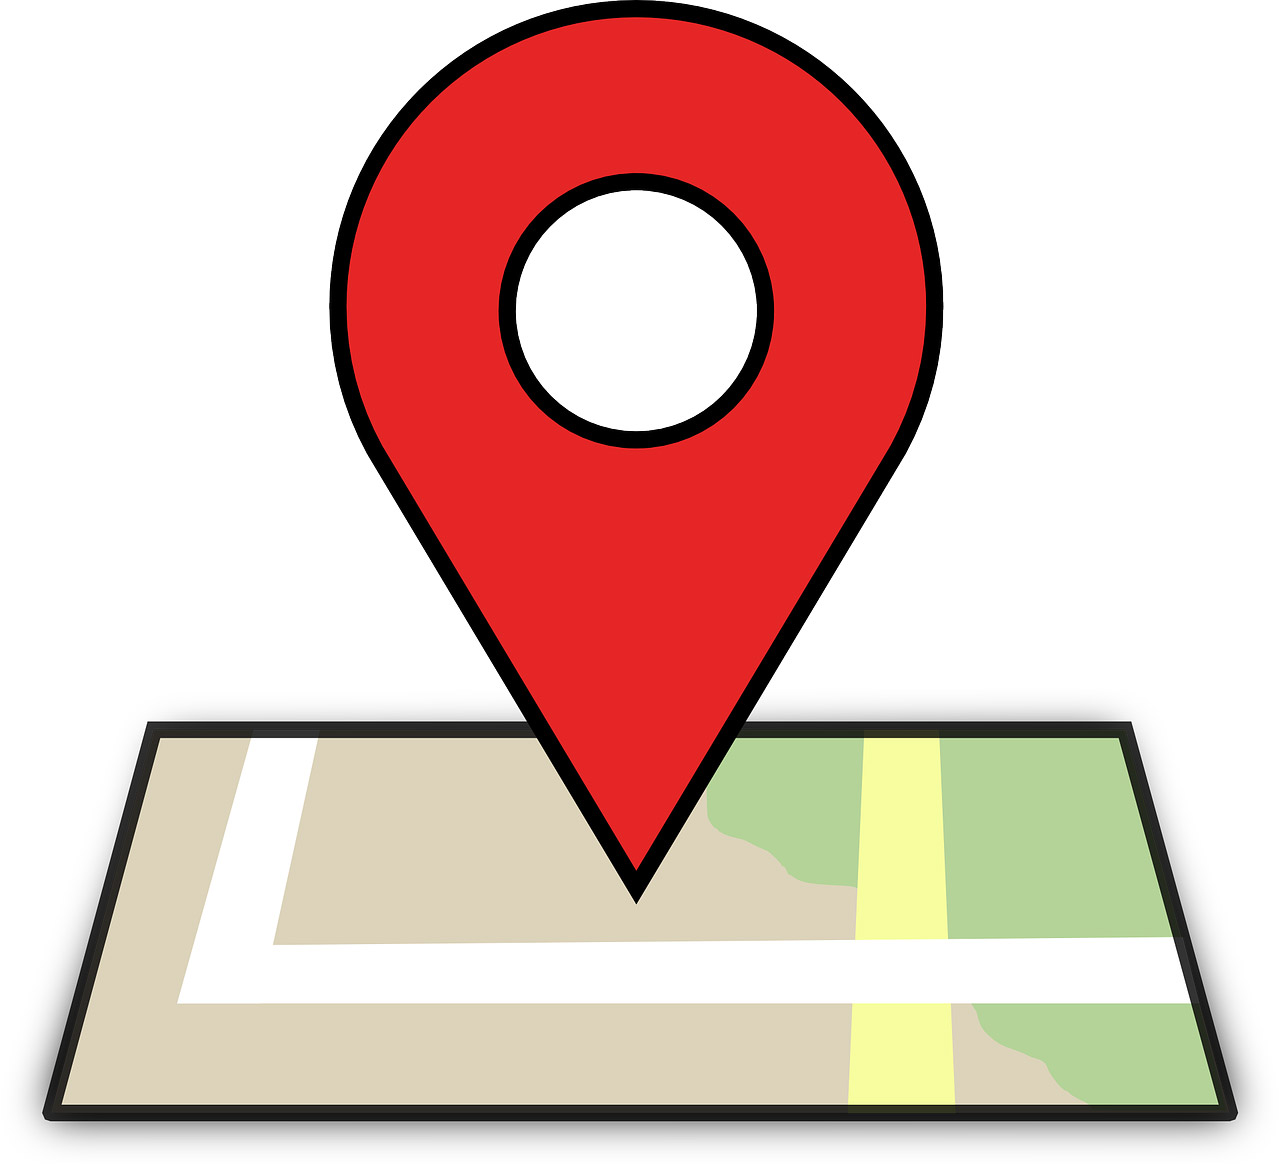 location-tracking-location-pin2